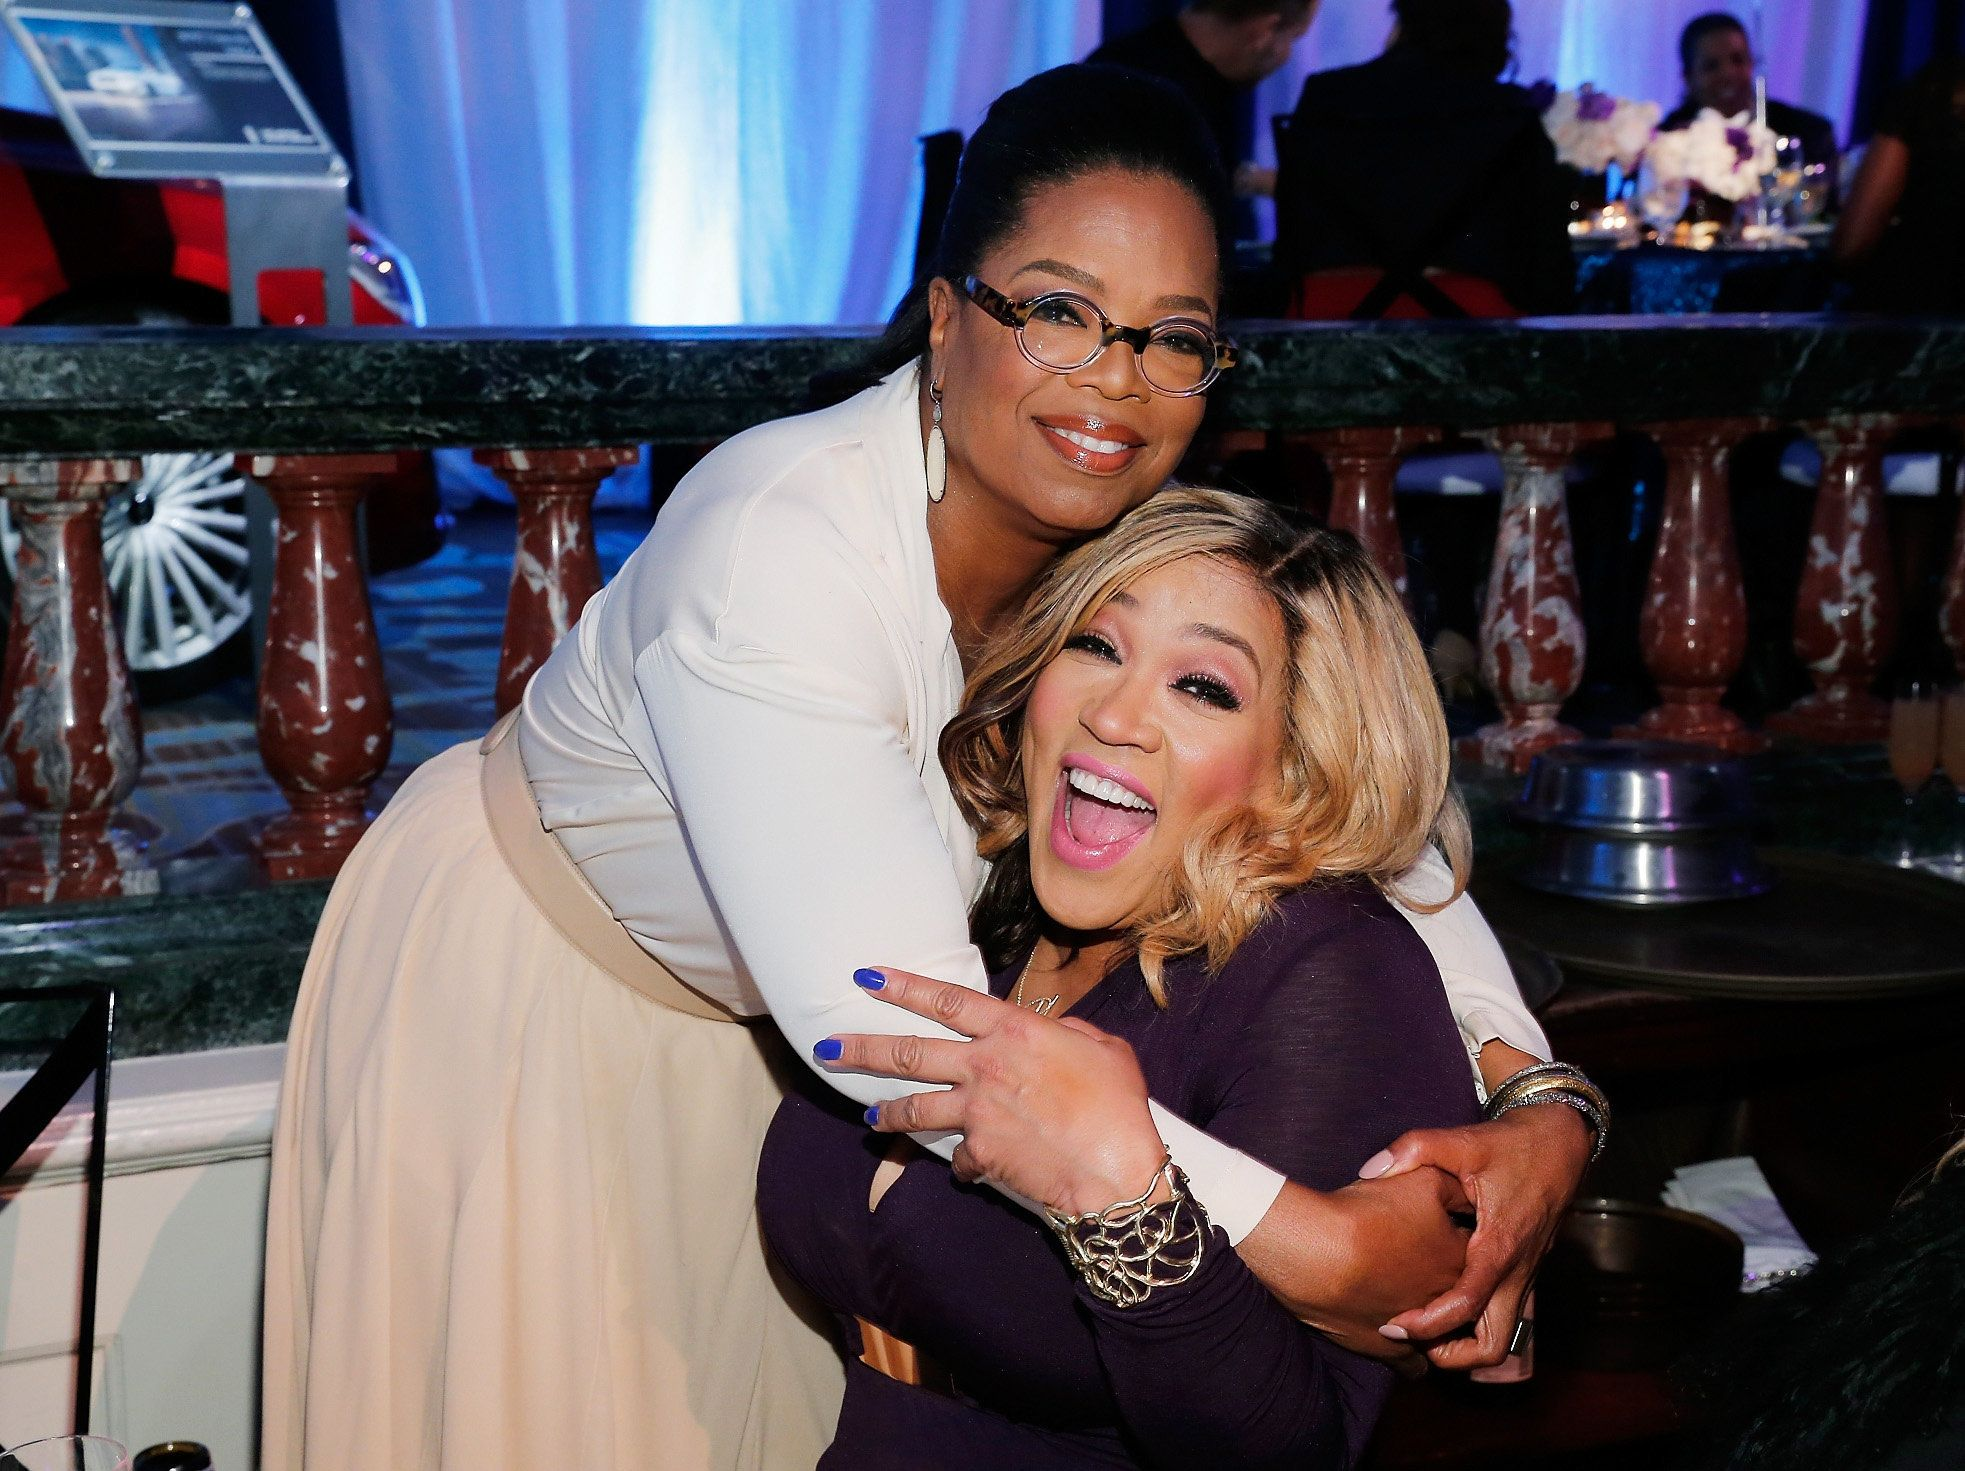 BEVERLY HILLS, CA - FEBRUARY 25:  Oprah Winfrey (L) and actress Kym Whitley attend the 2016 ESSENCE Black Women In Hollywood awards luncheon at the Beverly Wilshire Four Seasons Hotel on February 25, 2016 in Beverly Hills, California.  (Photo by Rich Polk/Getty Images for ESSENCE)